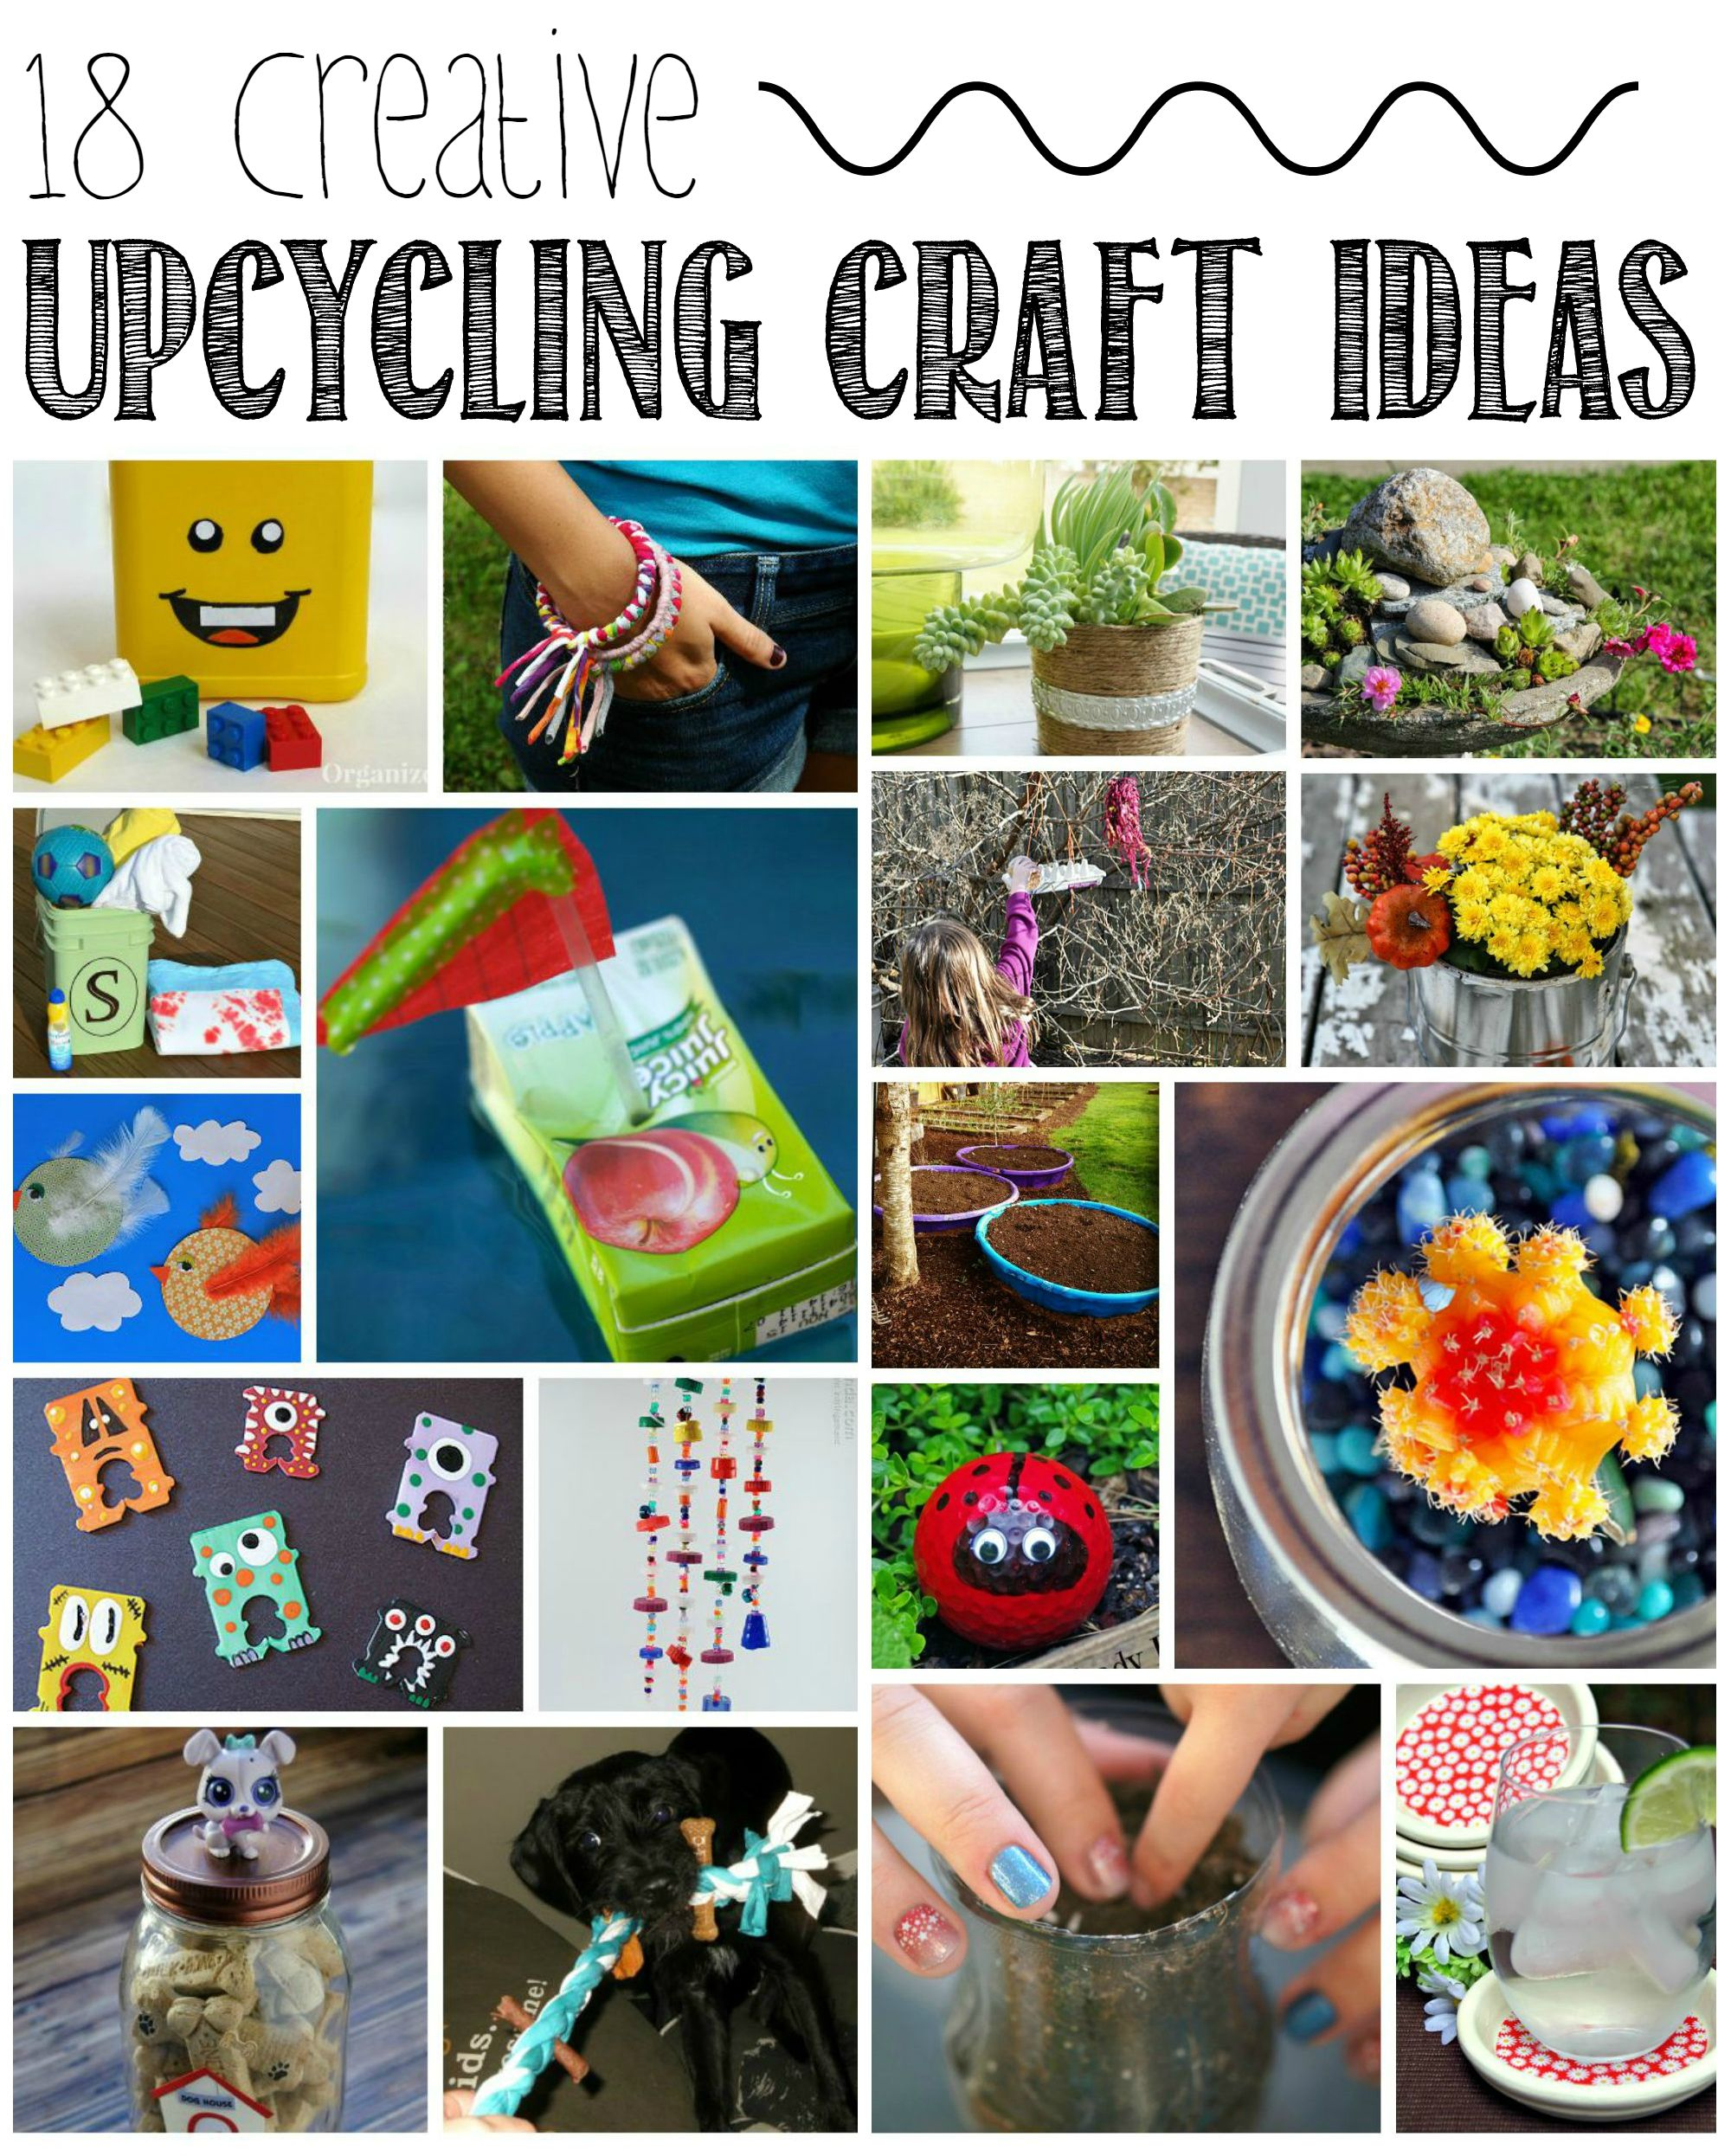 upcycling ideas crafts 18 creative upcycling craft ideas not quite susie 3162